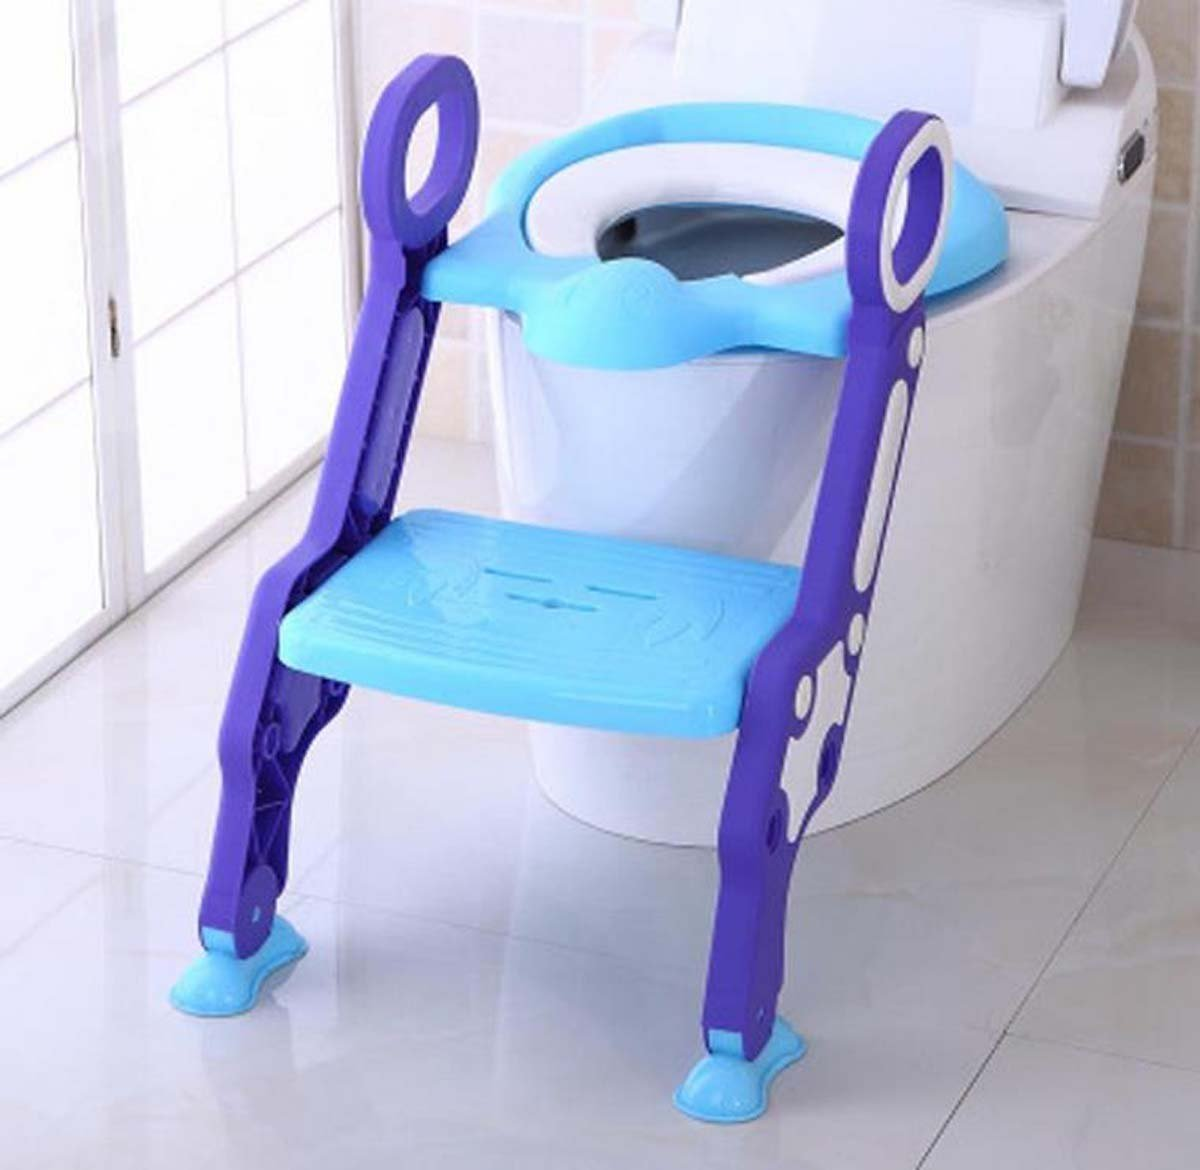 GONGFF Potty Toilet Seat With Step Stool Ladder, 2-In-1 Trainer For Kids And Toddlers Suitable For 3-7 Years Old,#2